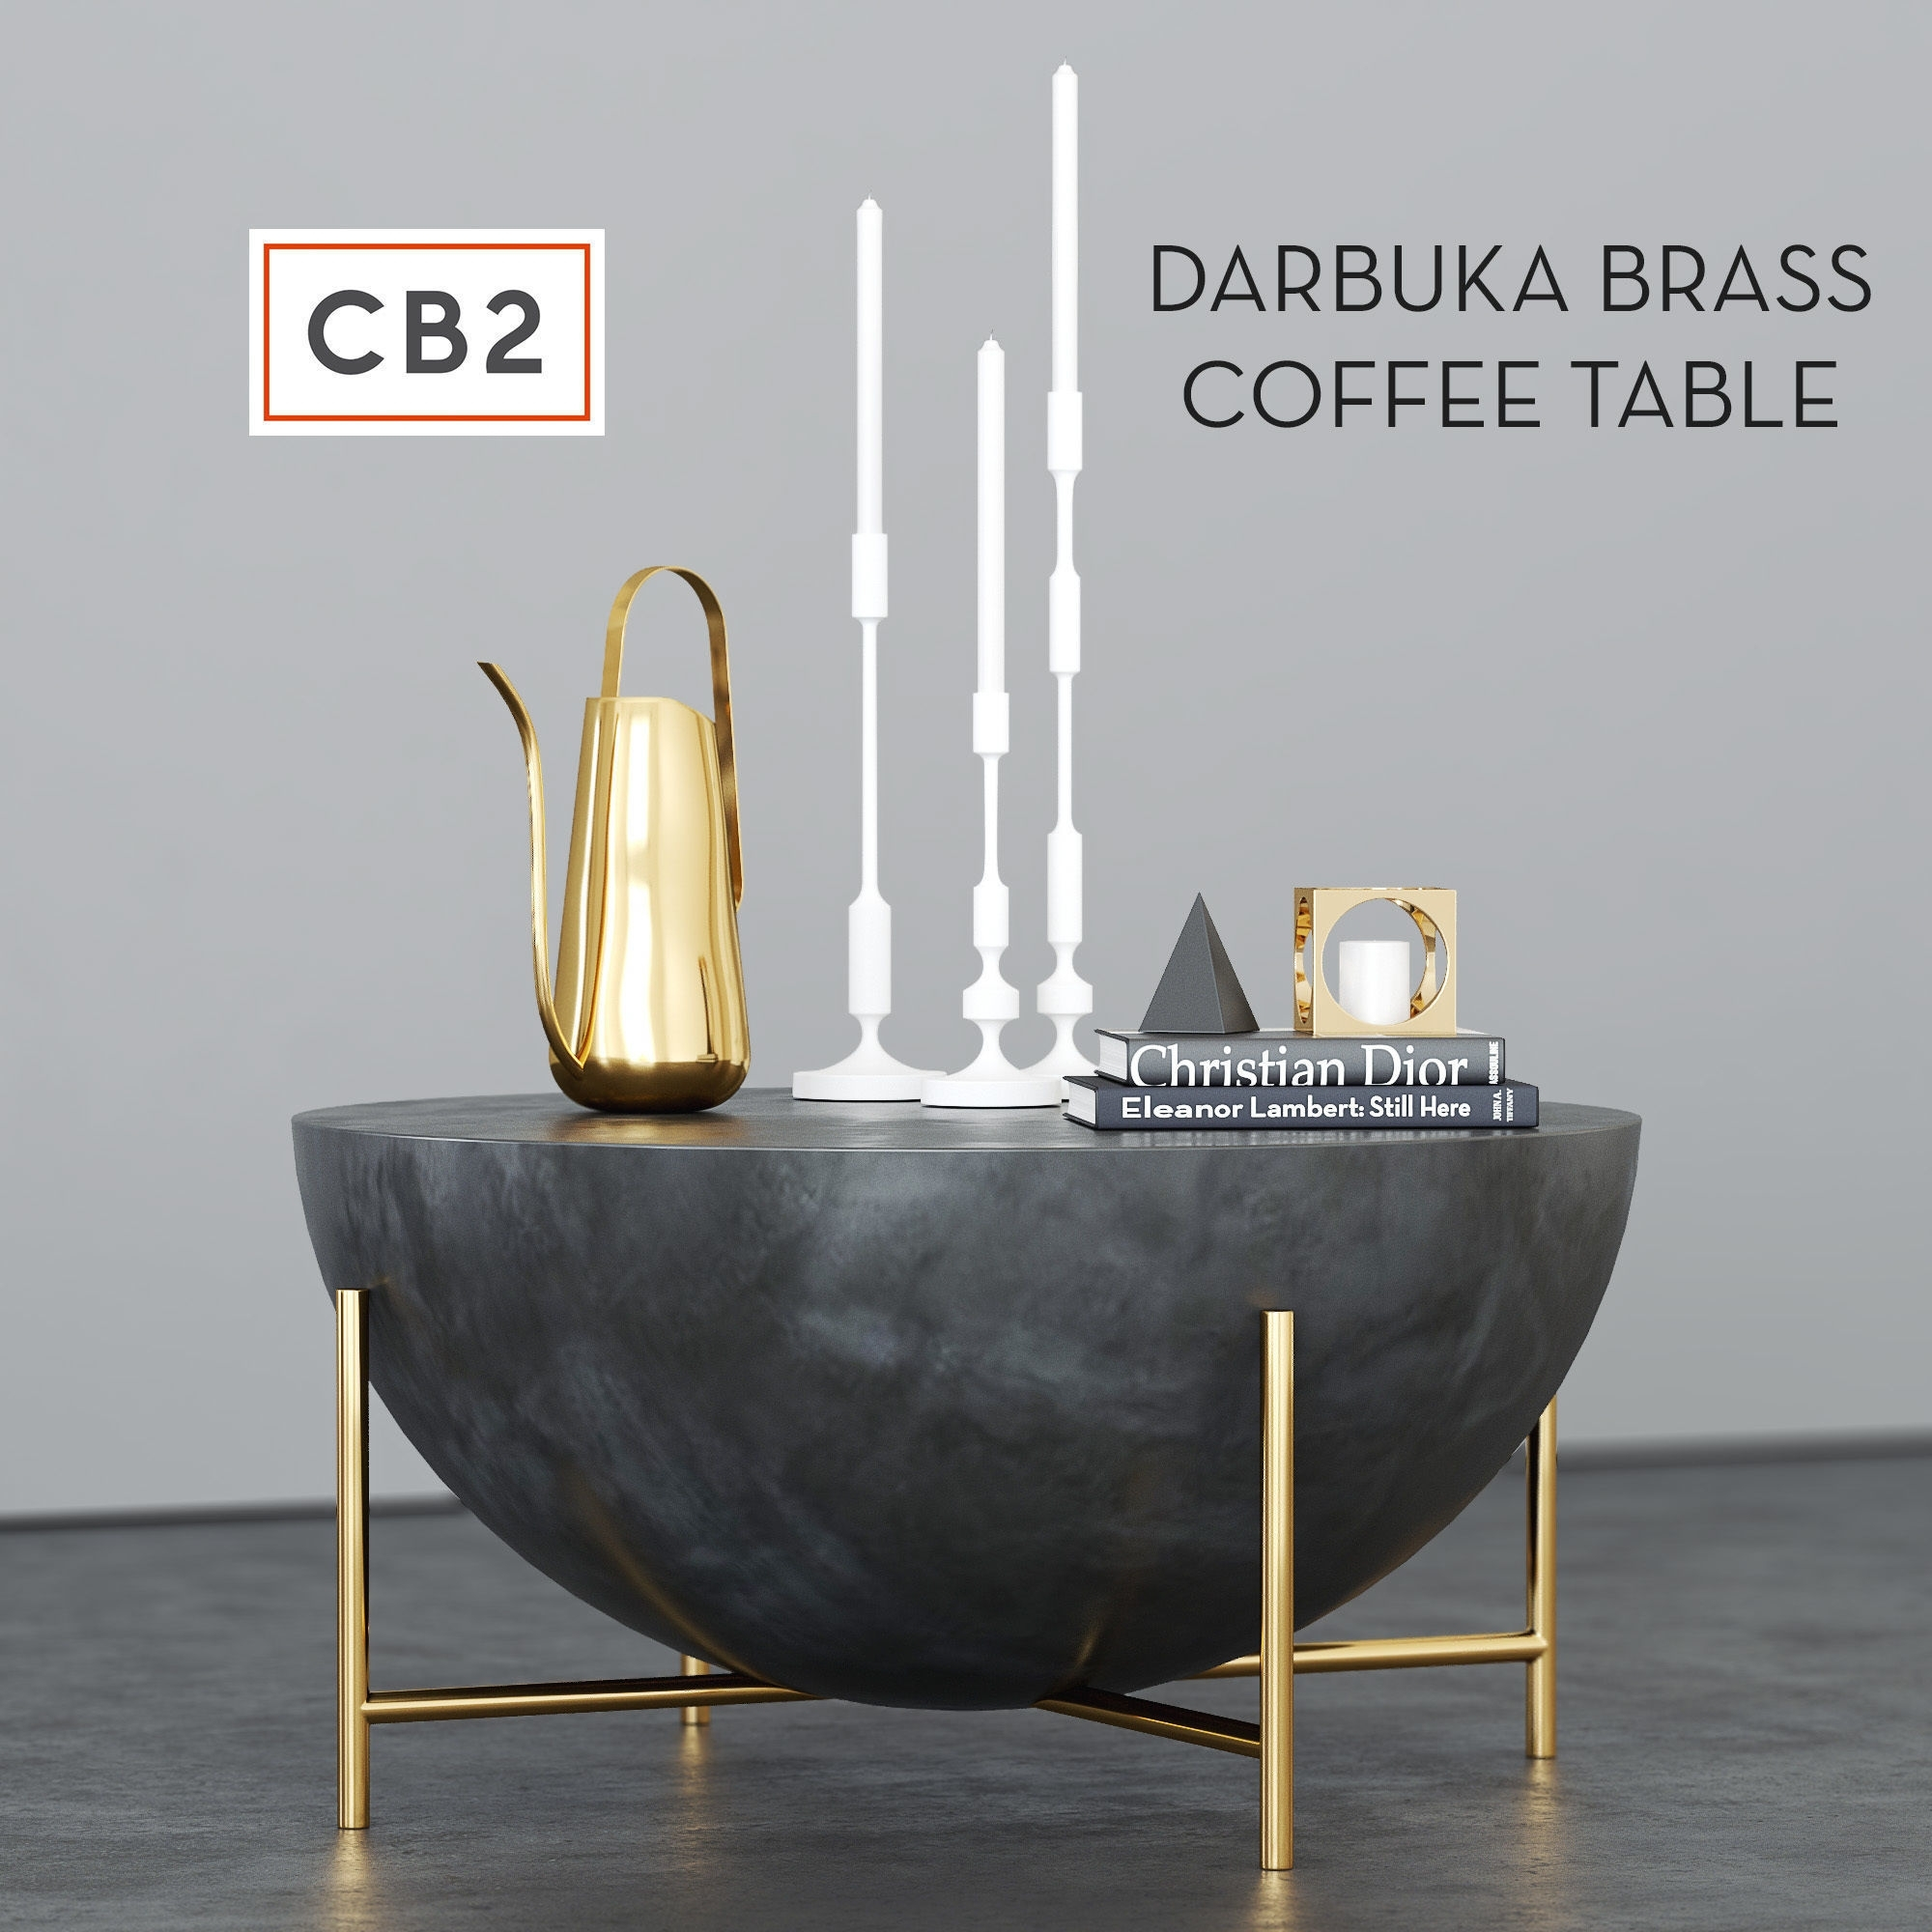 Cb2 Darbuka Brass Coffee Table 3d | Cgtrader Inside Darbuka Black Coffee Tables (View 14 of 30)